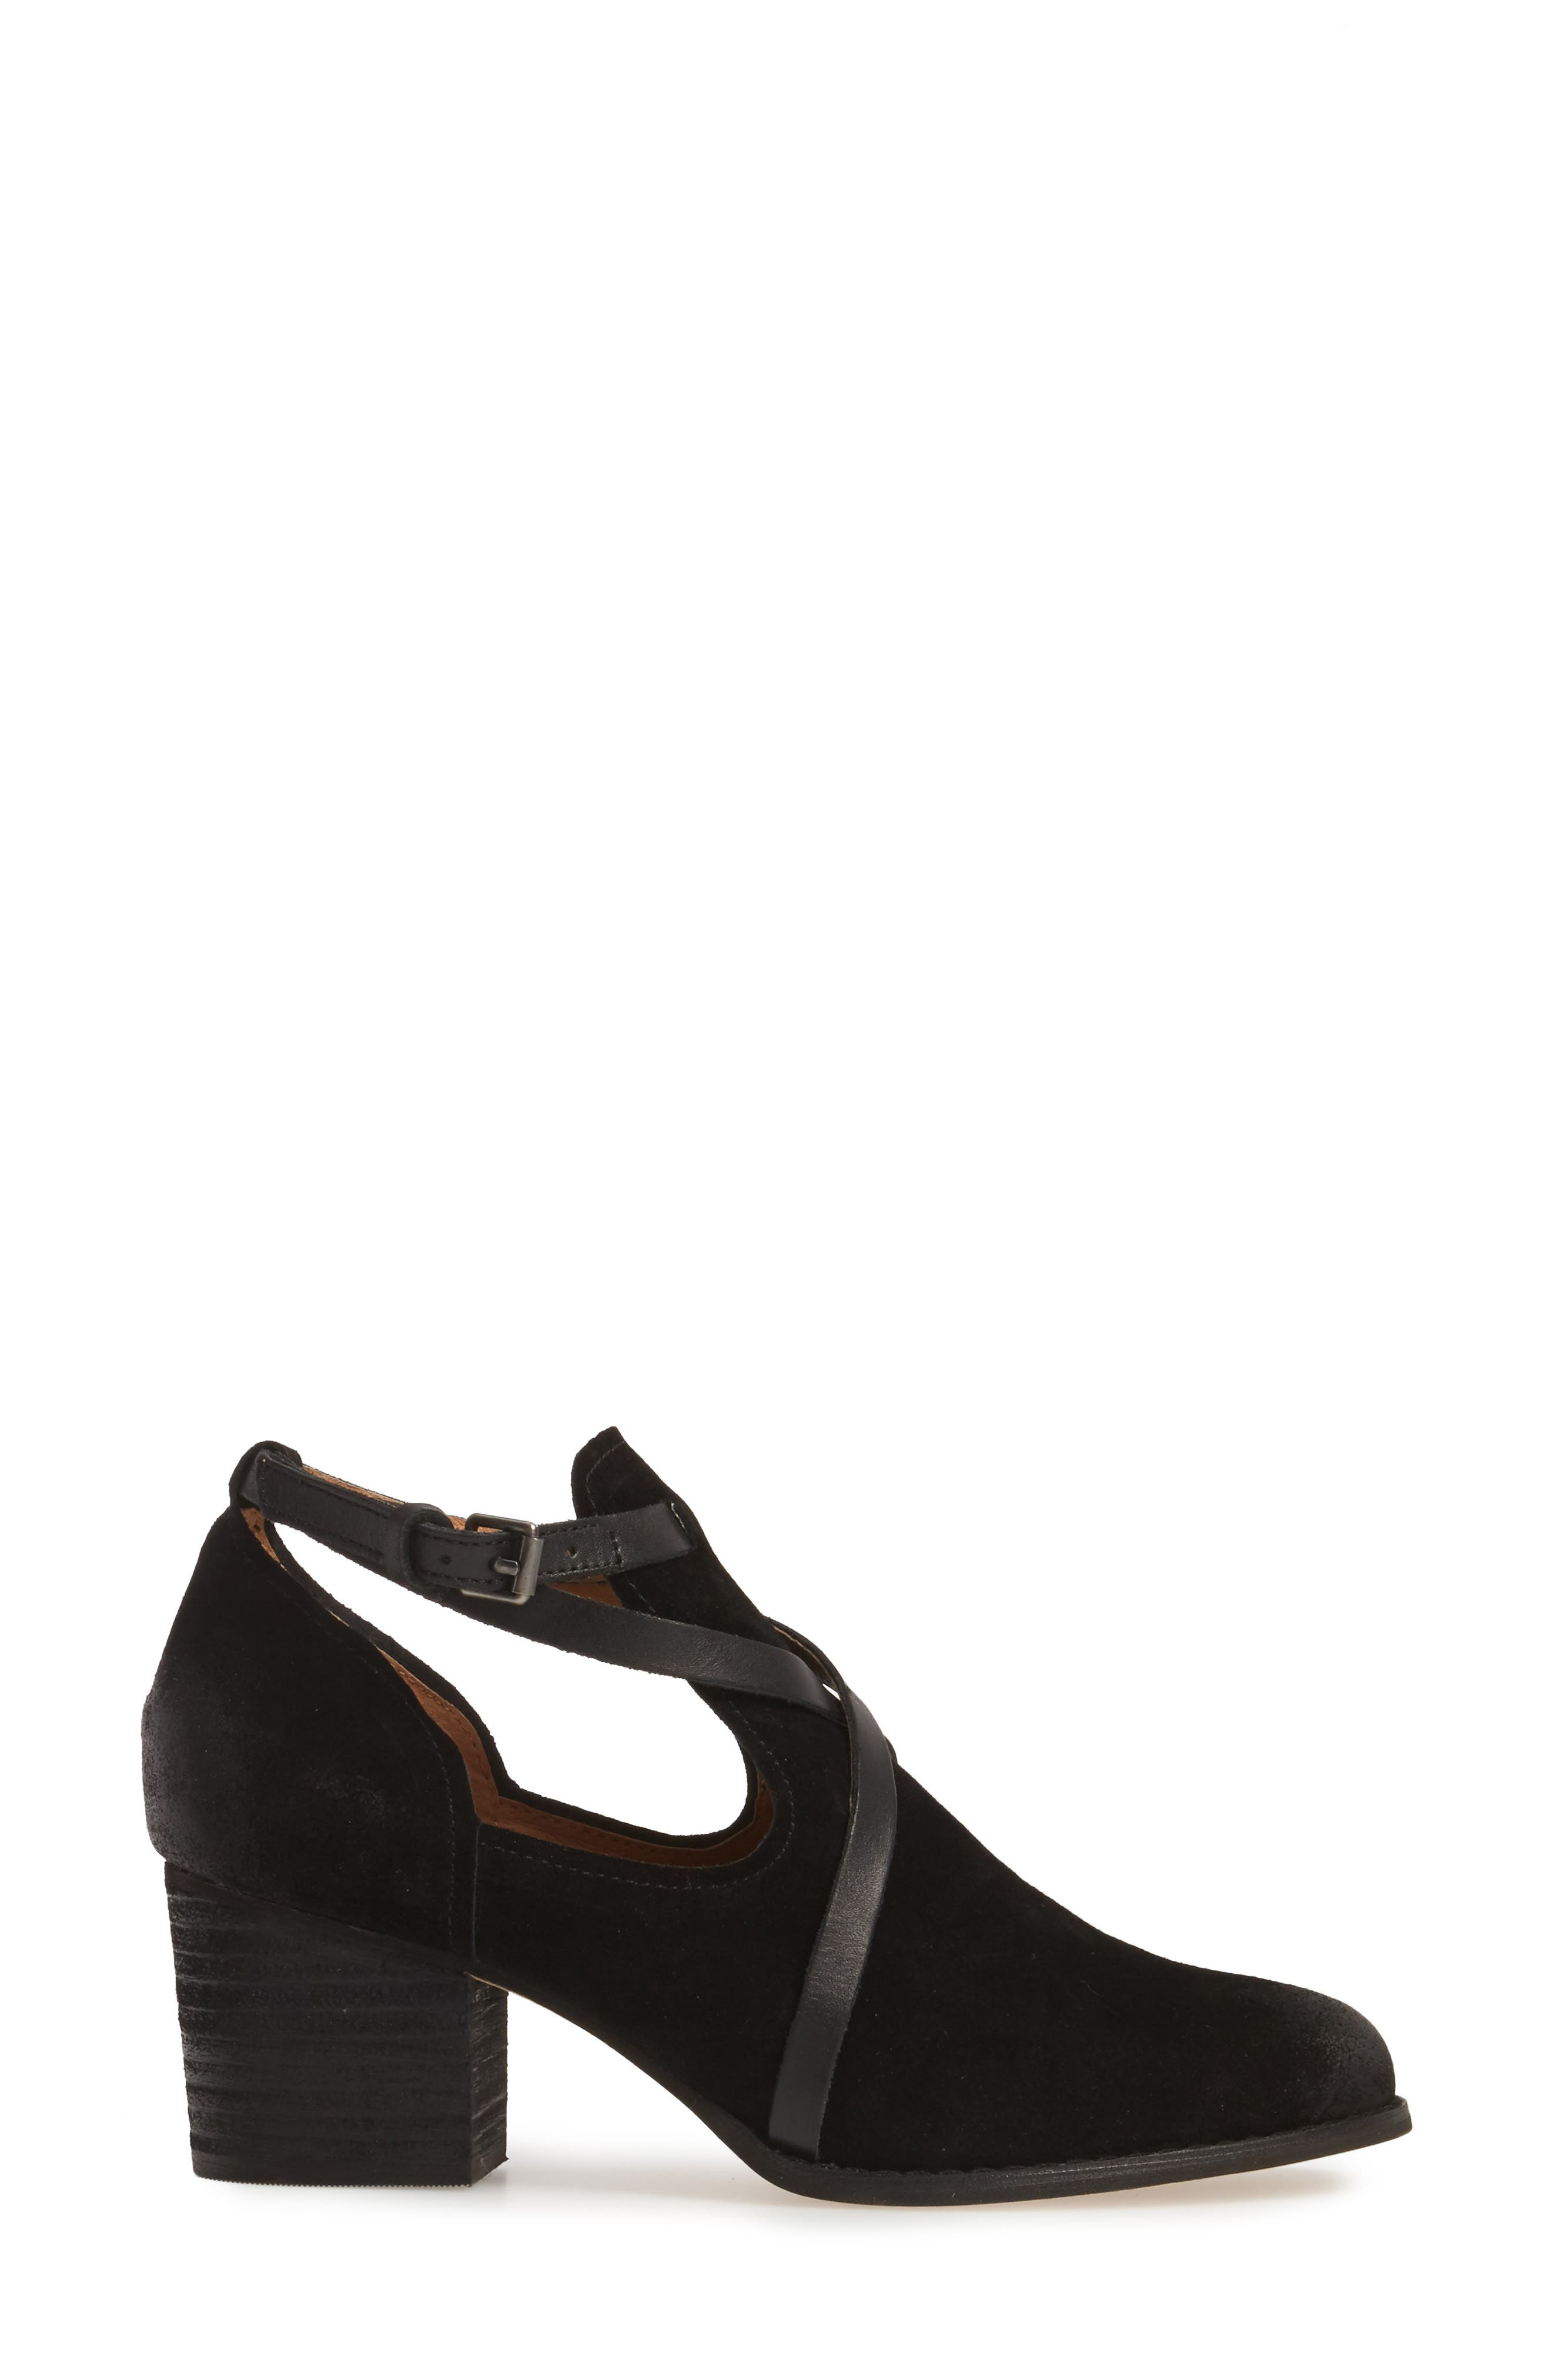 Hanna Bootie,                             Alternate thumbnail 3, color,                             Black Suede